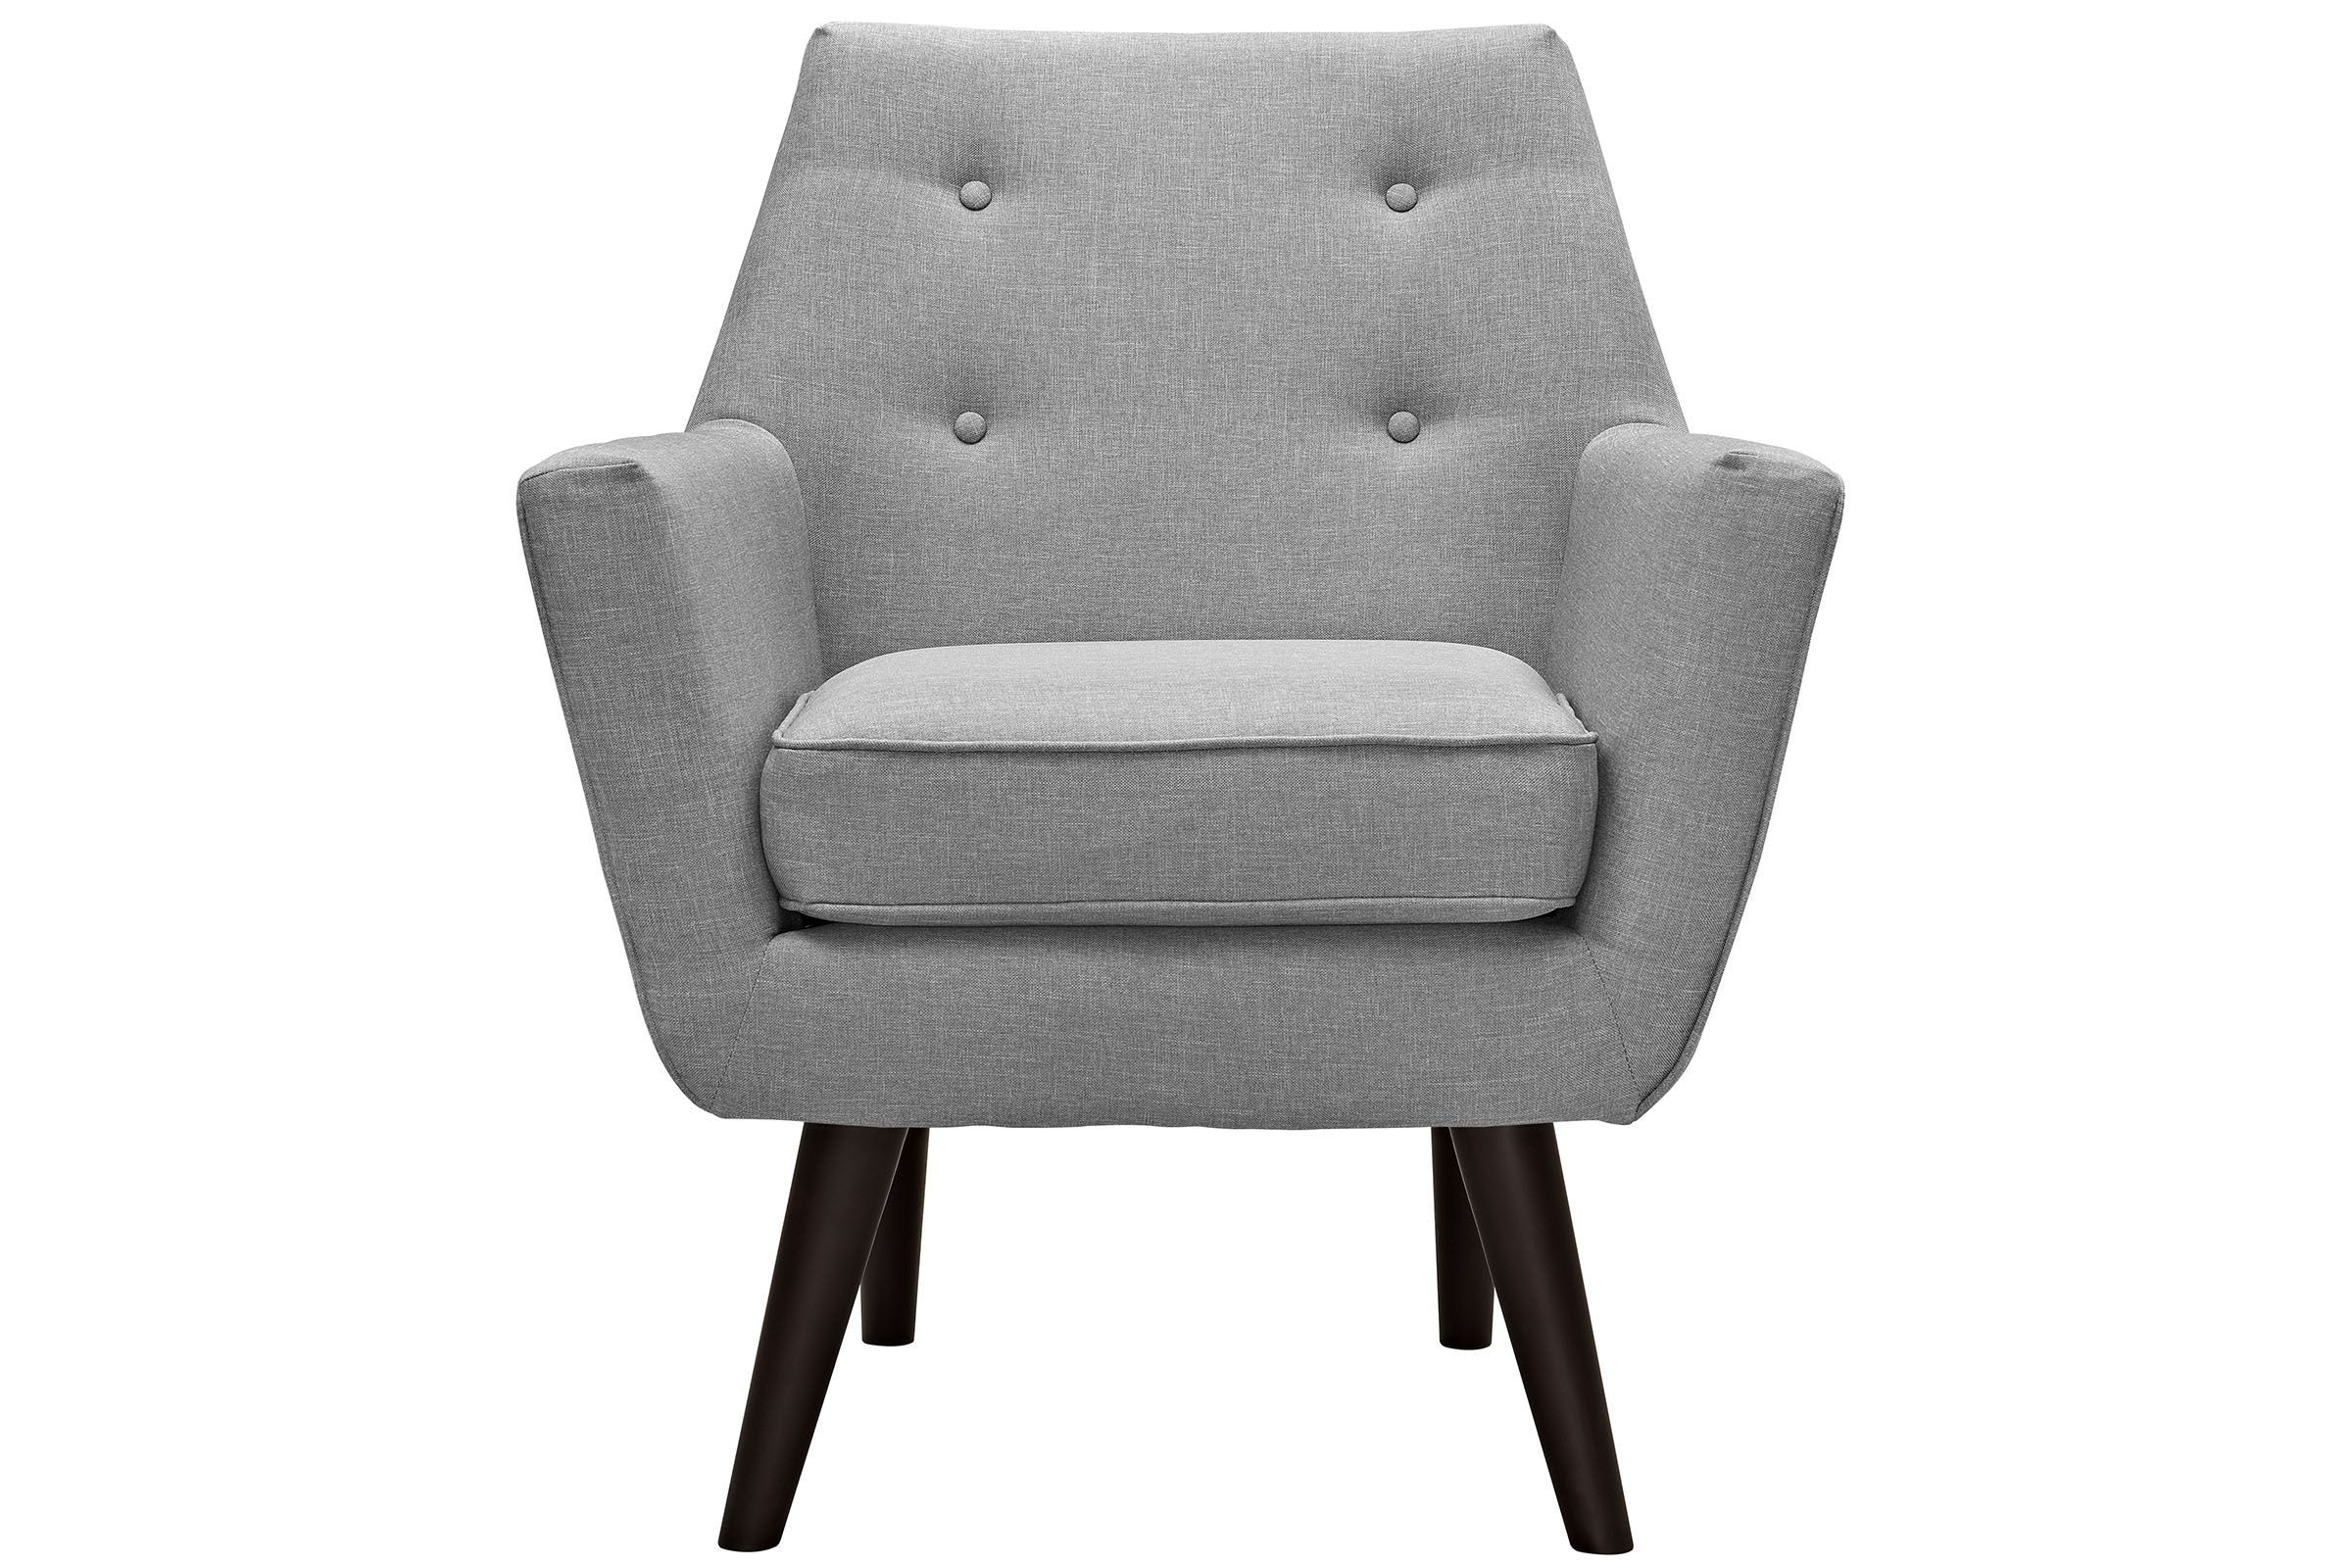 Posit Upholstered Armchair In Light Grey By Modway Grey Armchair